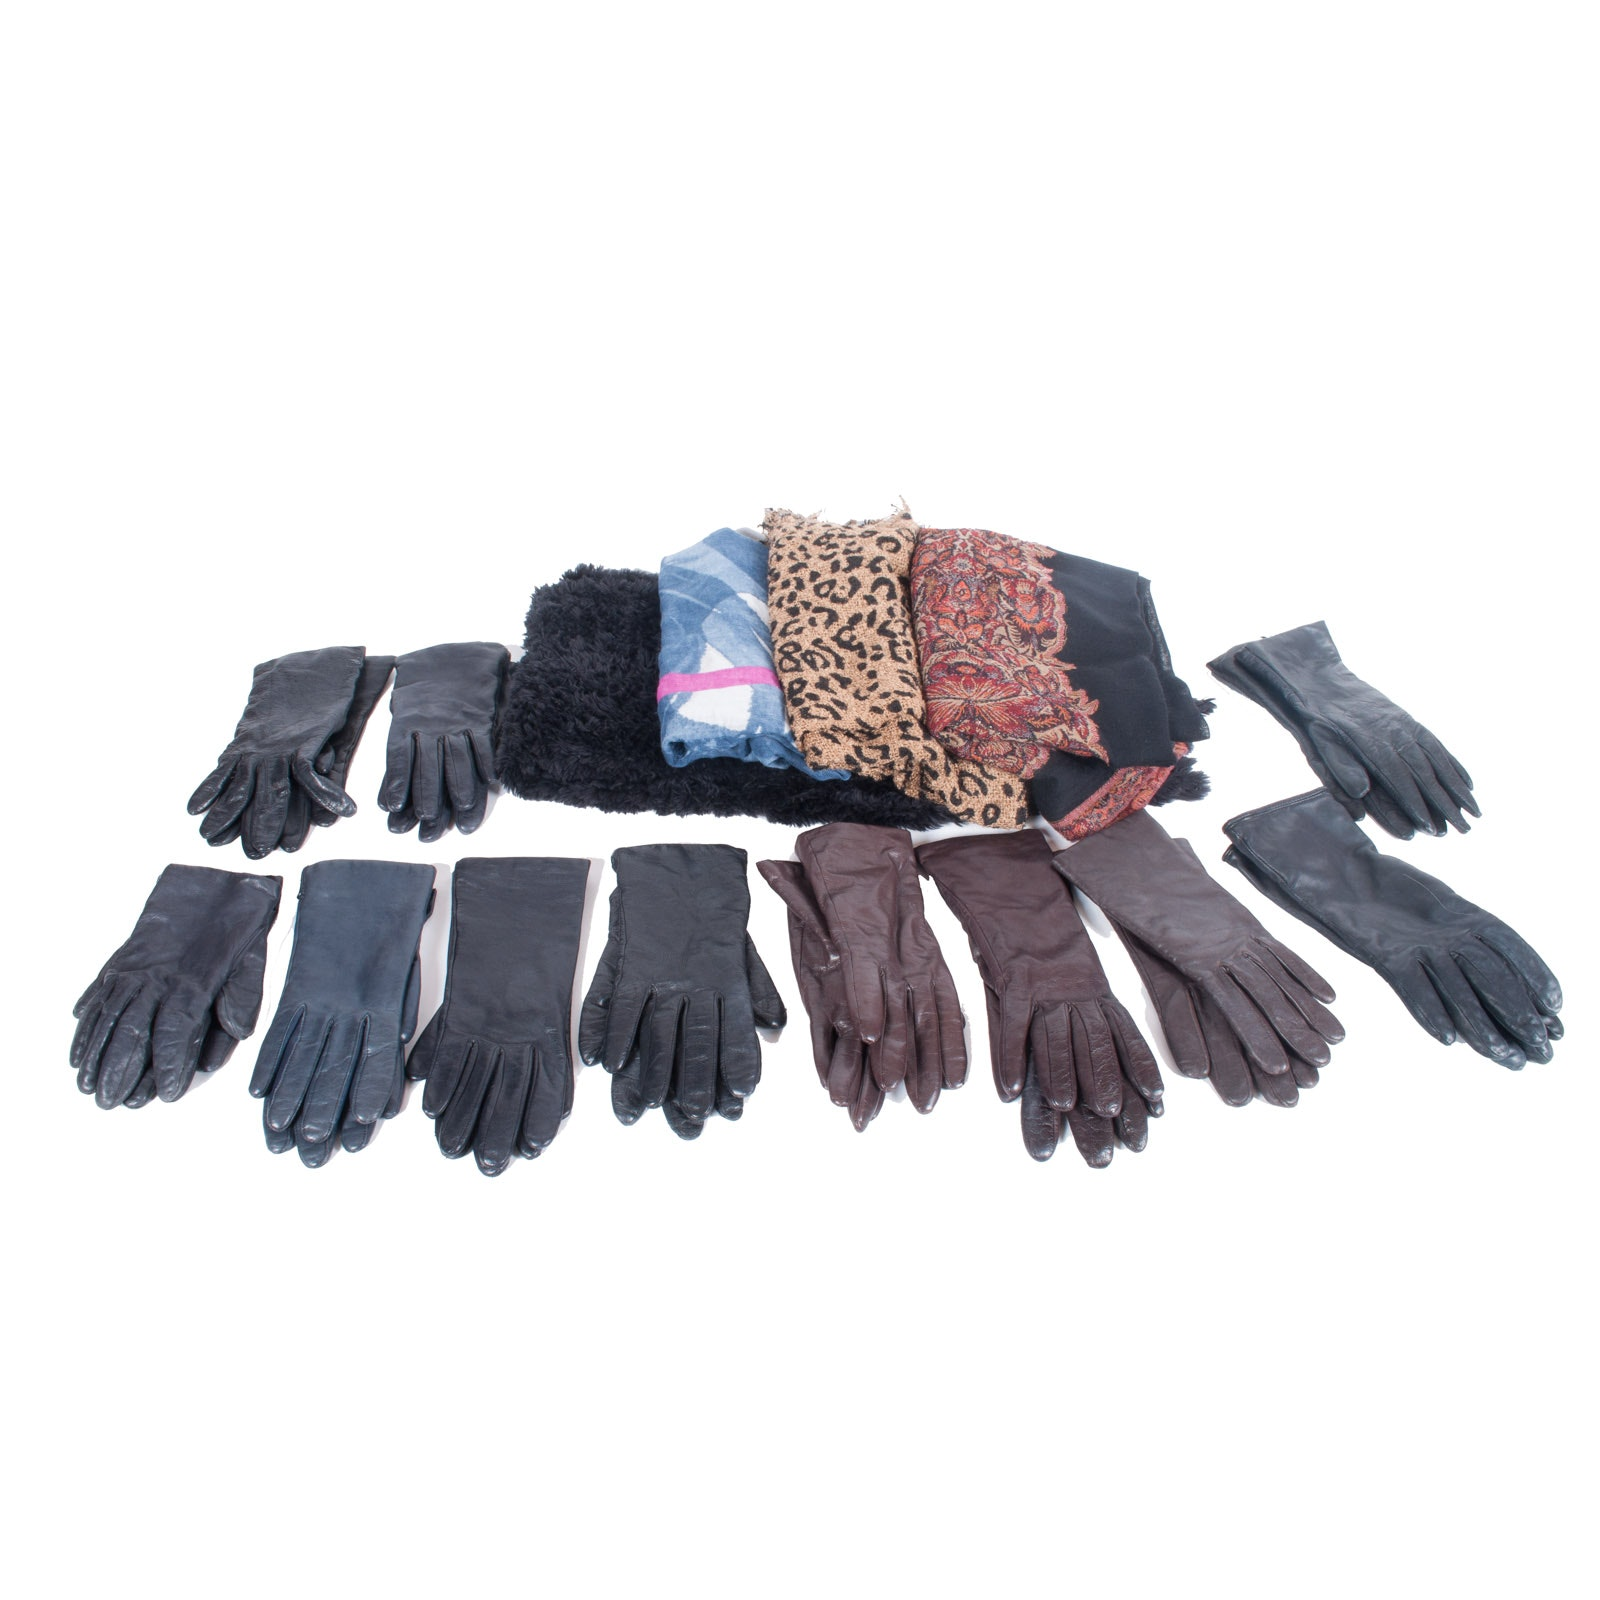 Women's Leather Gloves and Fashion Scarves